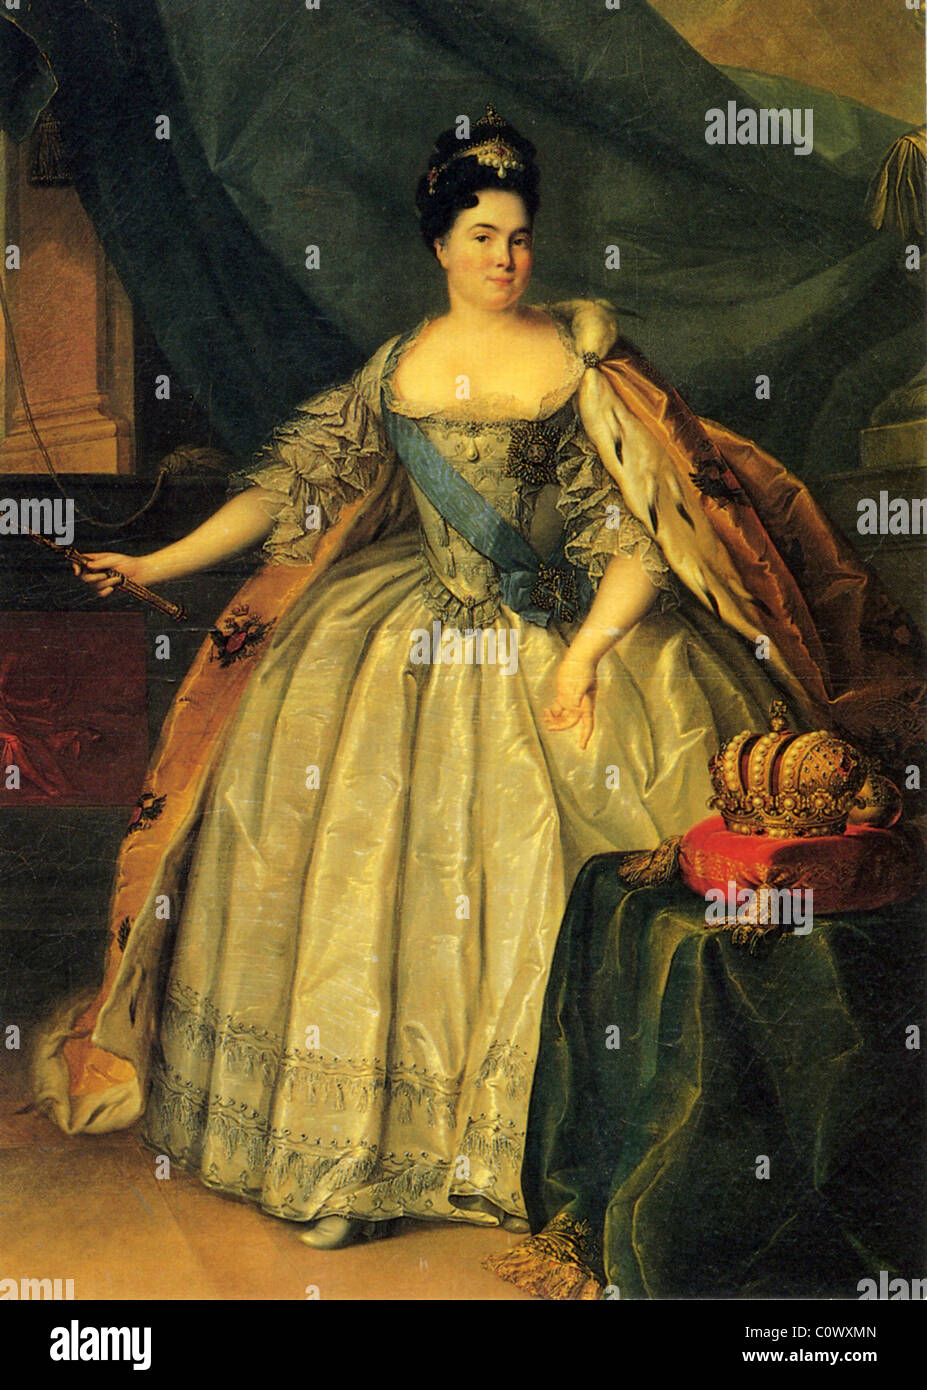 CATHERINE I OF RUSSIA  (1684-1727) Empress and Autocrat of All the Russias painted about 1717 - Stock Image